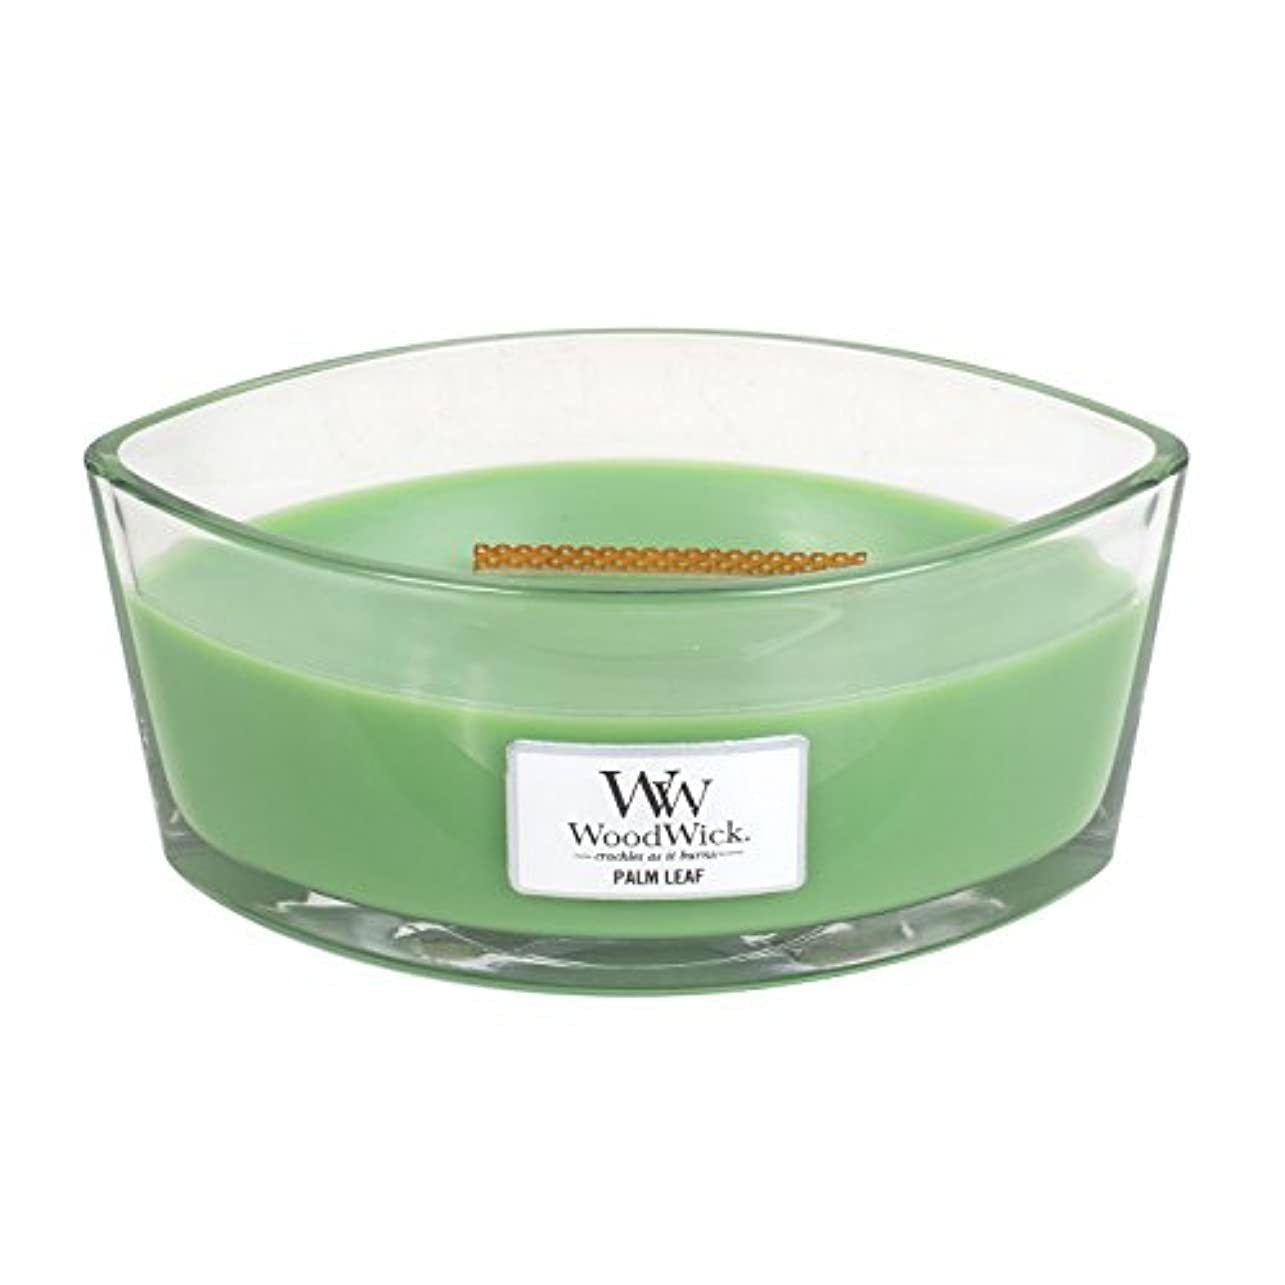 Woodwick Palm Leaf , Highly Scented Candle、楕円ガラスJar with元HearthWick Flame , Large 7-inch、16オンス